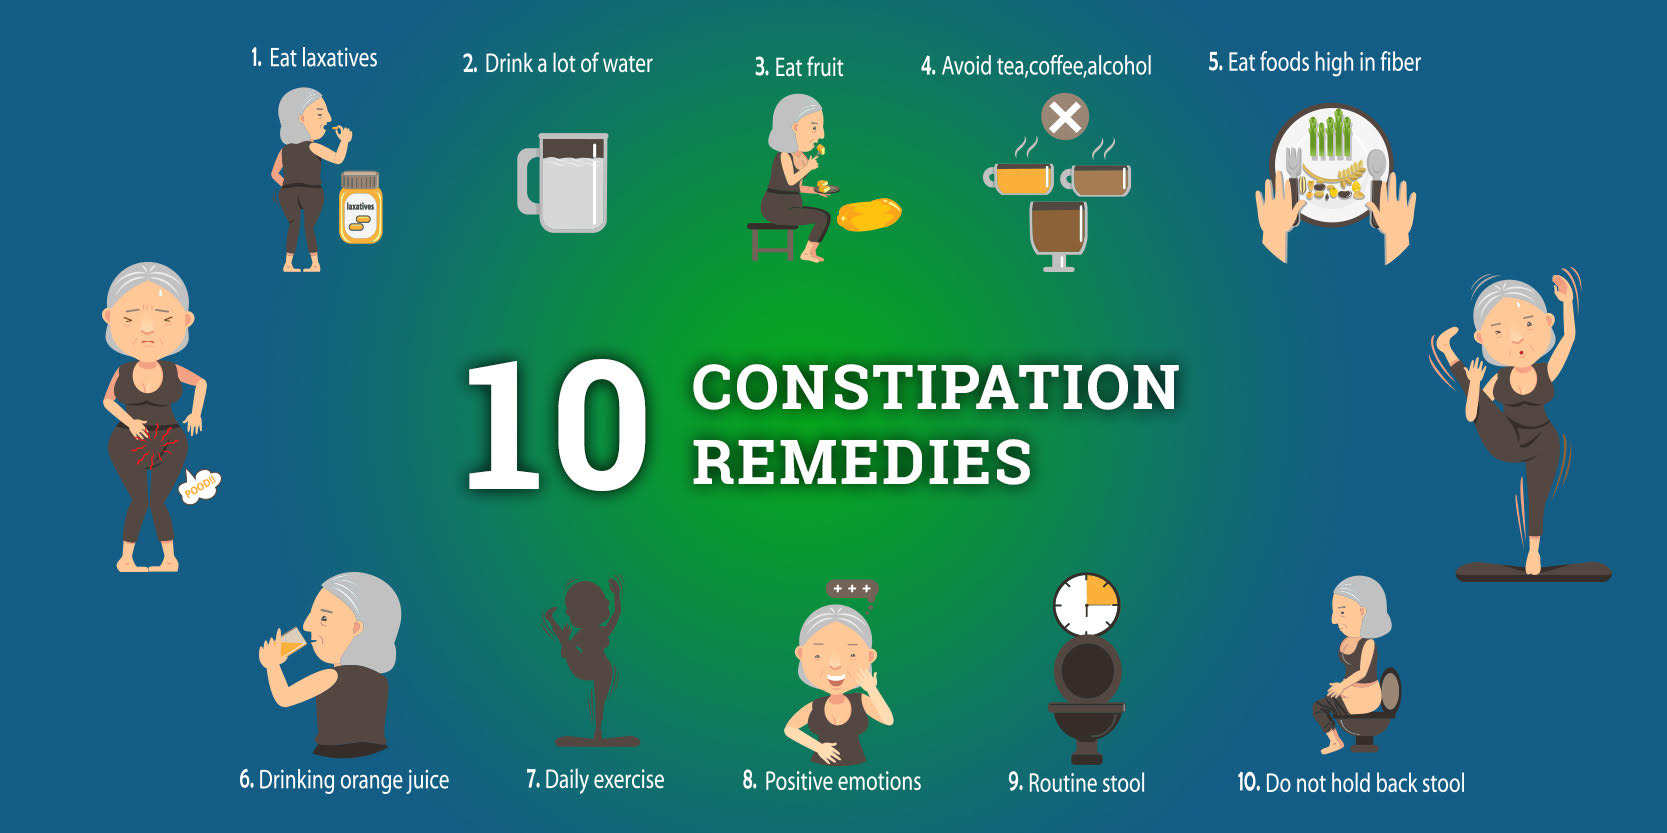 Indian home remedies for constipation